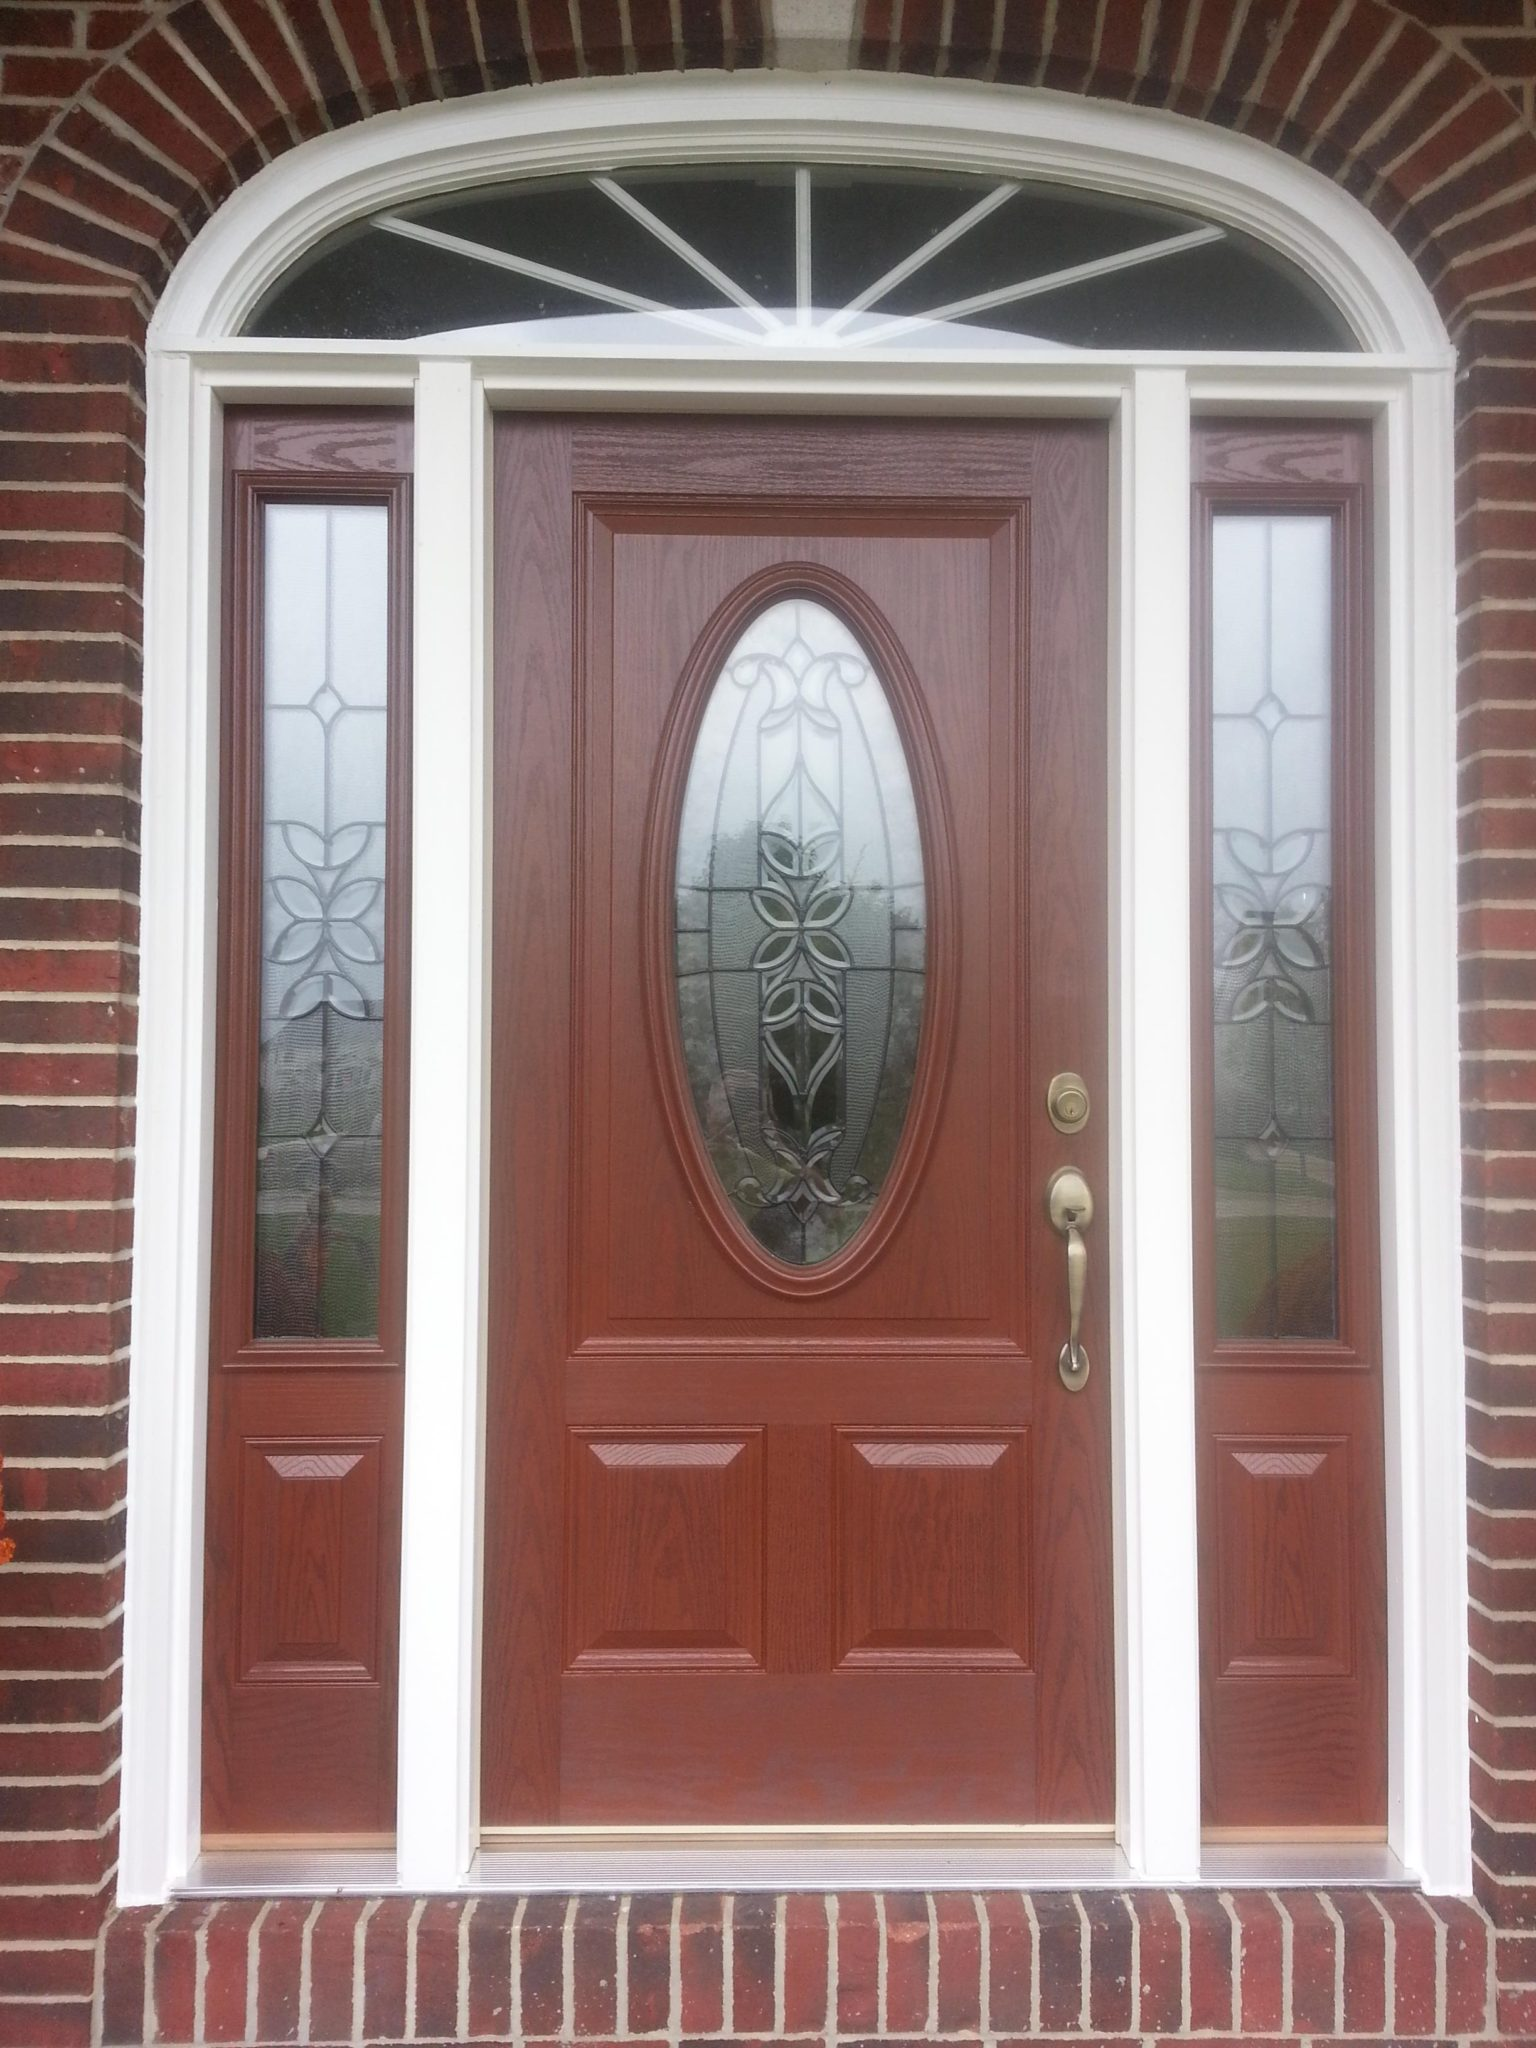 Door Sidelight Archives ⋆ Integrity Windows